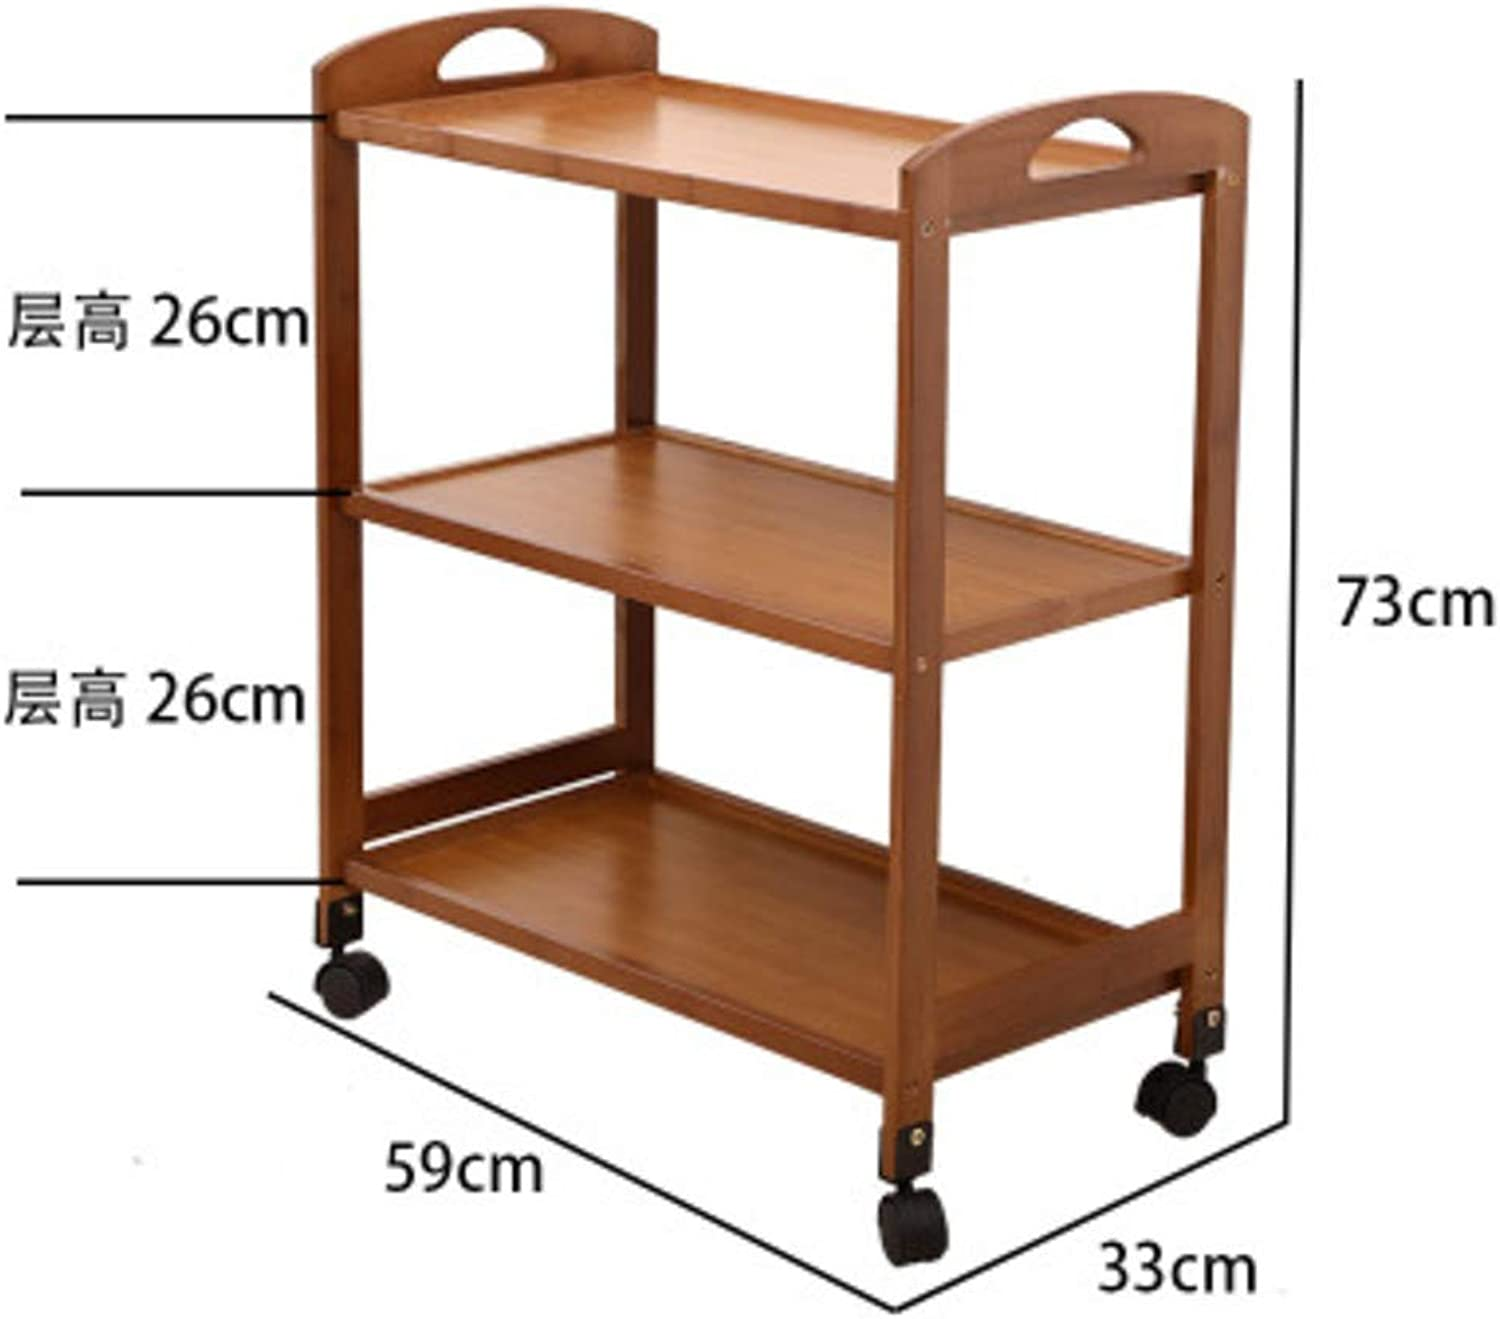 Home Kitchen Dining car,Storage with Removable Shelves Beauty Salon Hotel Kitchen cart Mobile Coffee Serving cart-D